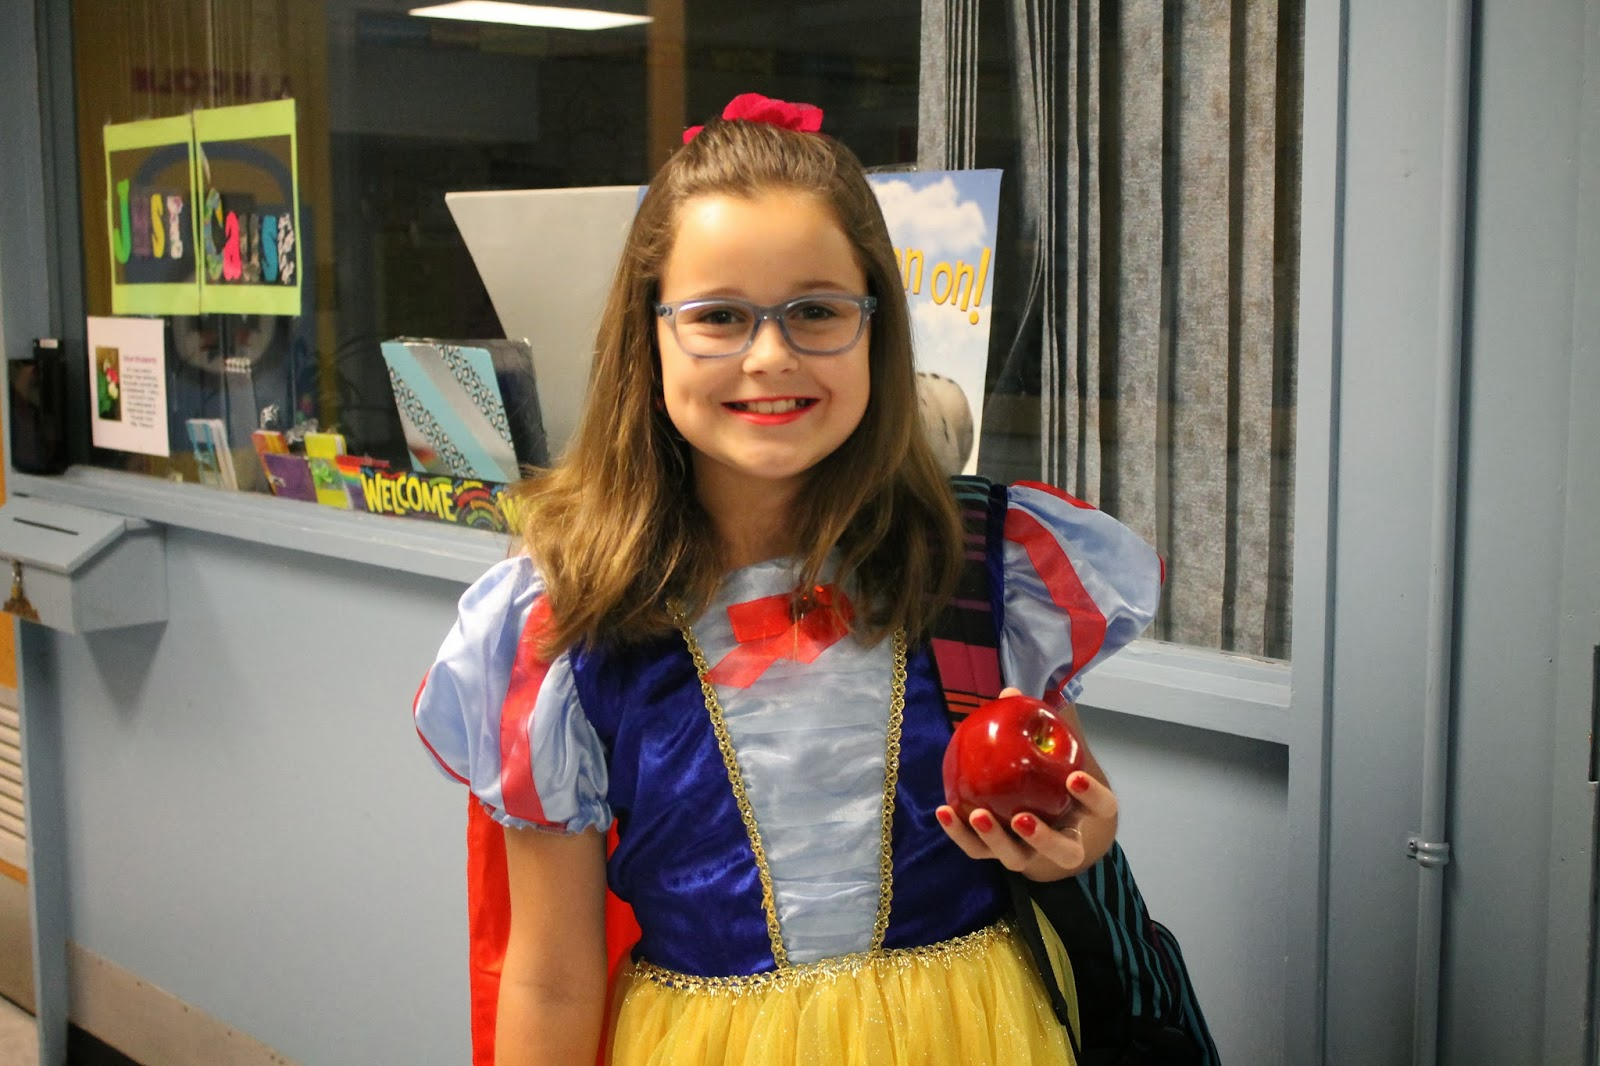 Lincoln Middle School News Feed: The Spirit of Halloween